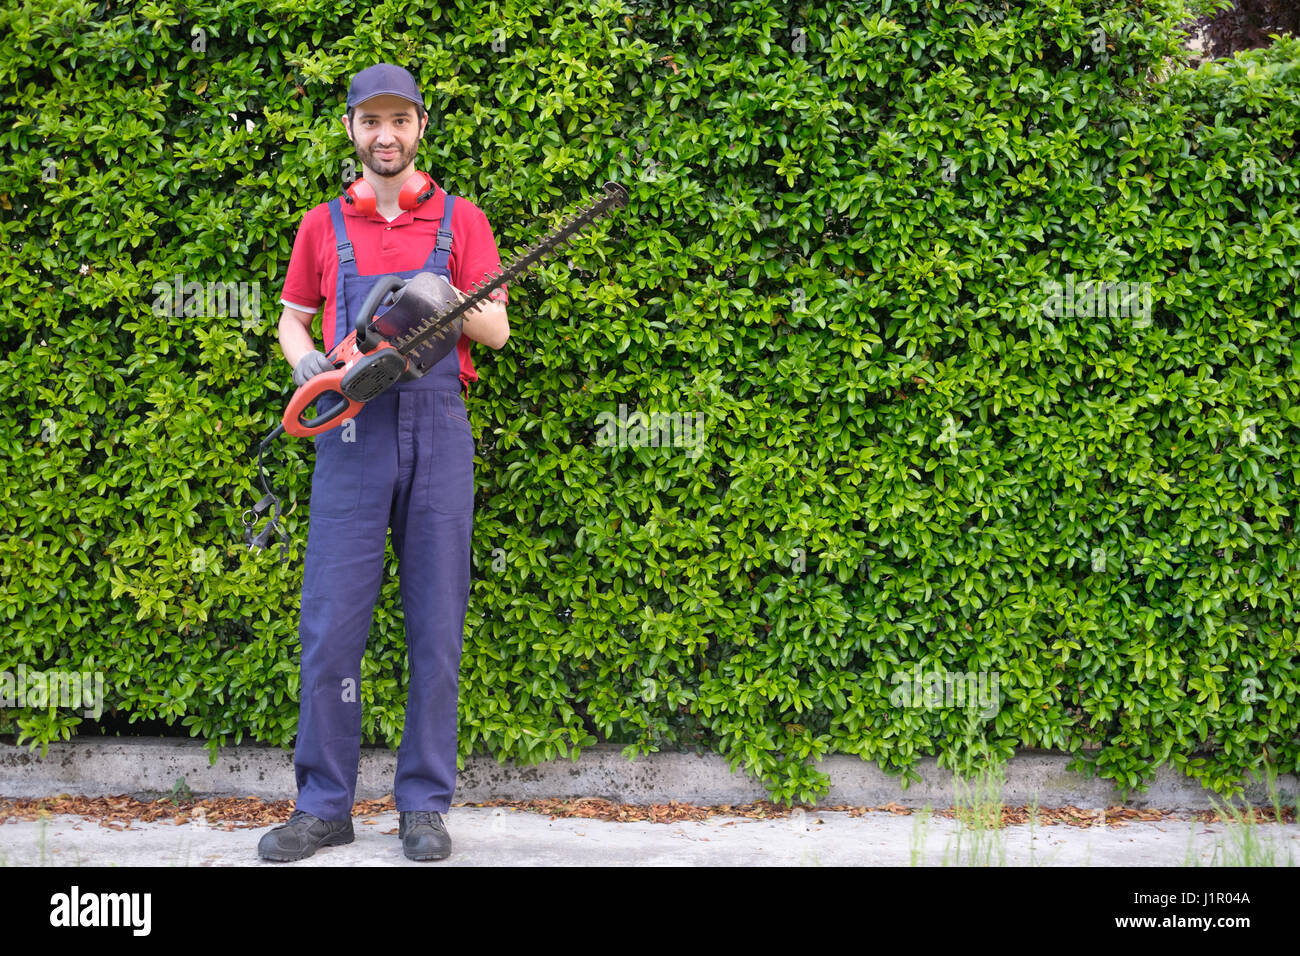 Professional gardner dressed with safety overalls using an hedge clipper - Stock Image